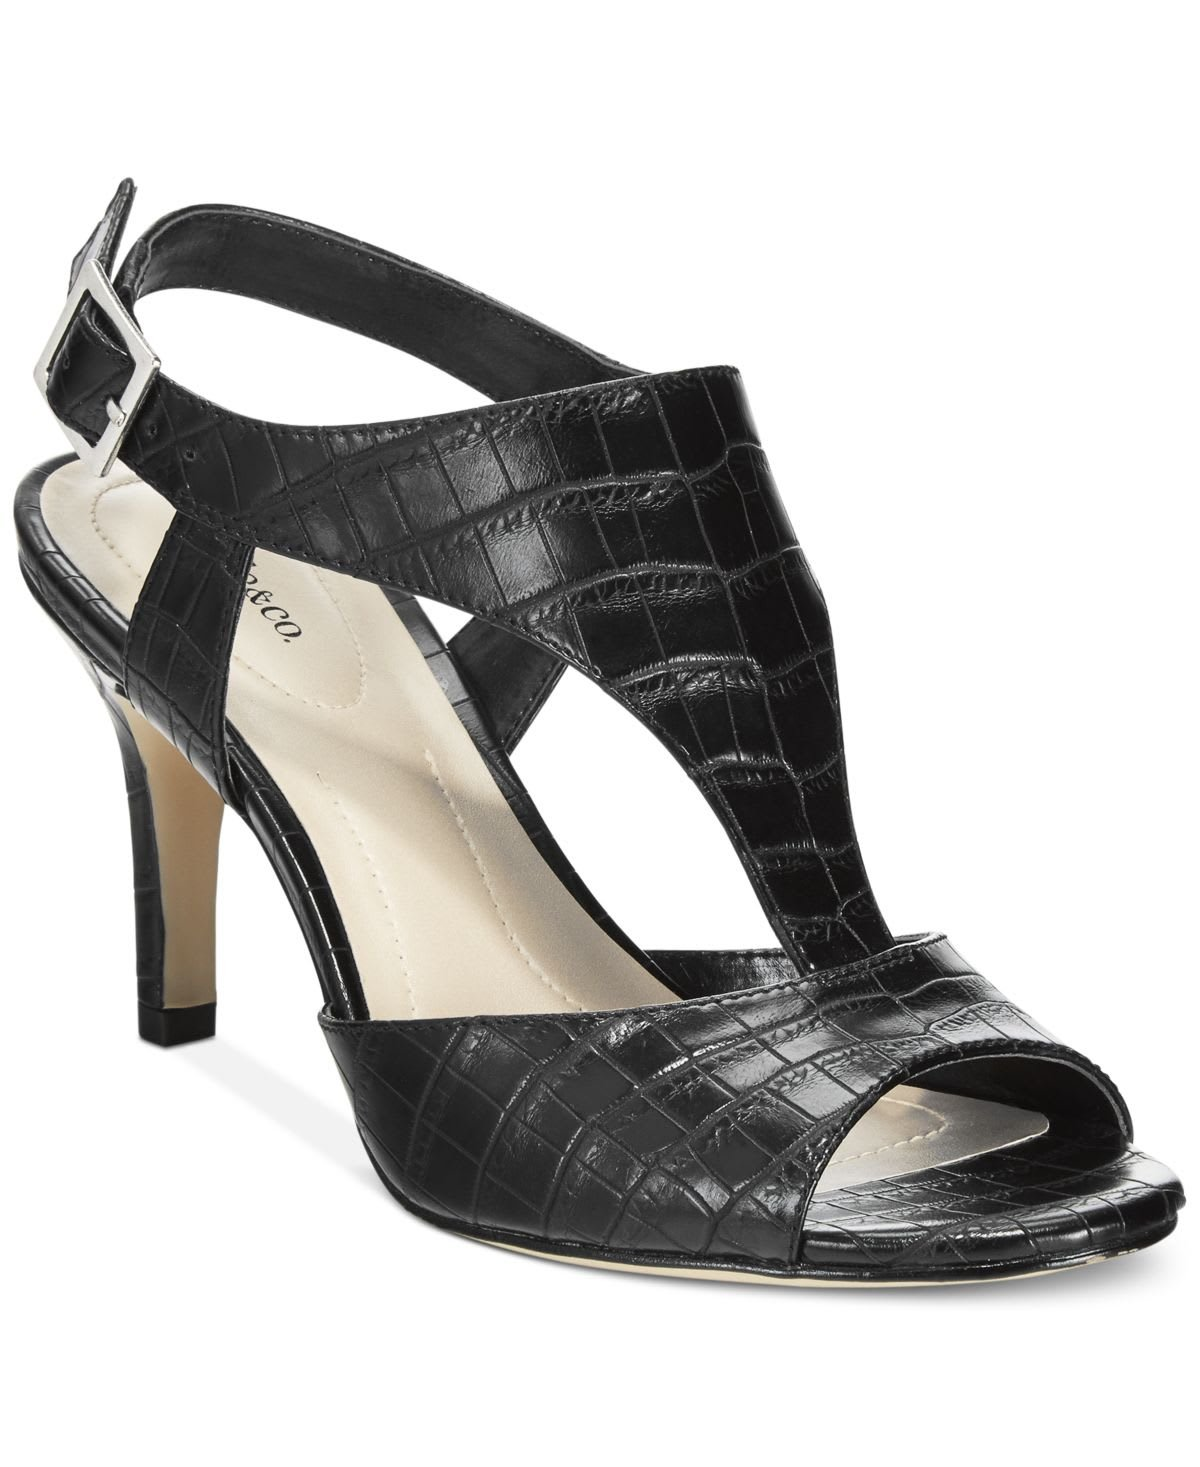 Style & Co. Womens Saharii Open Toe Casual Ankle Strap Sandals, Black, Size 8.0